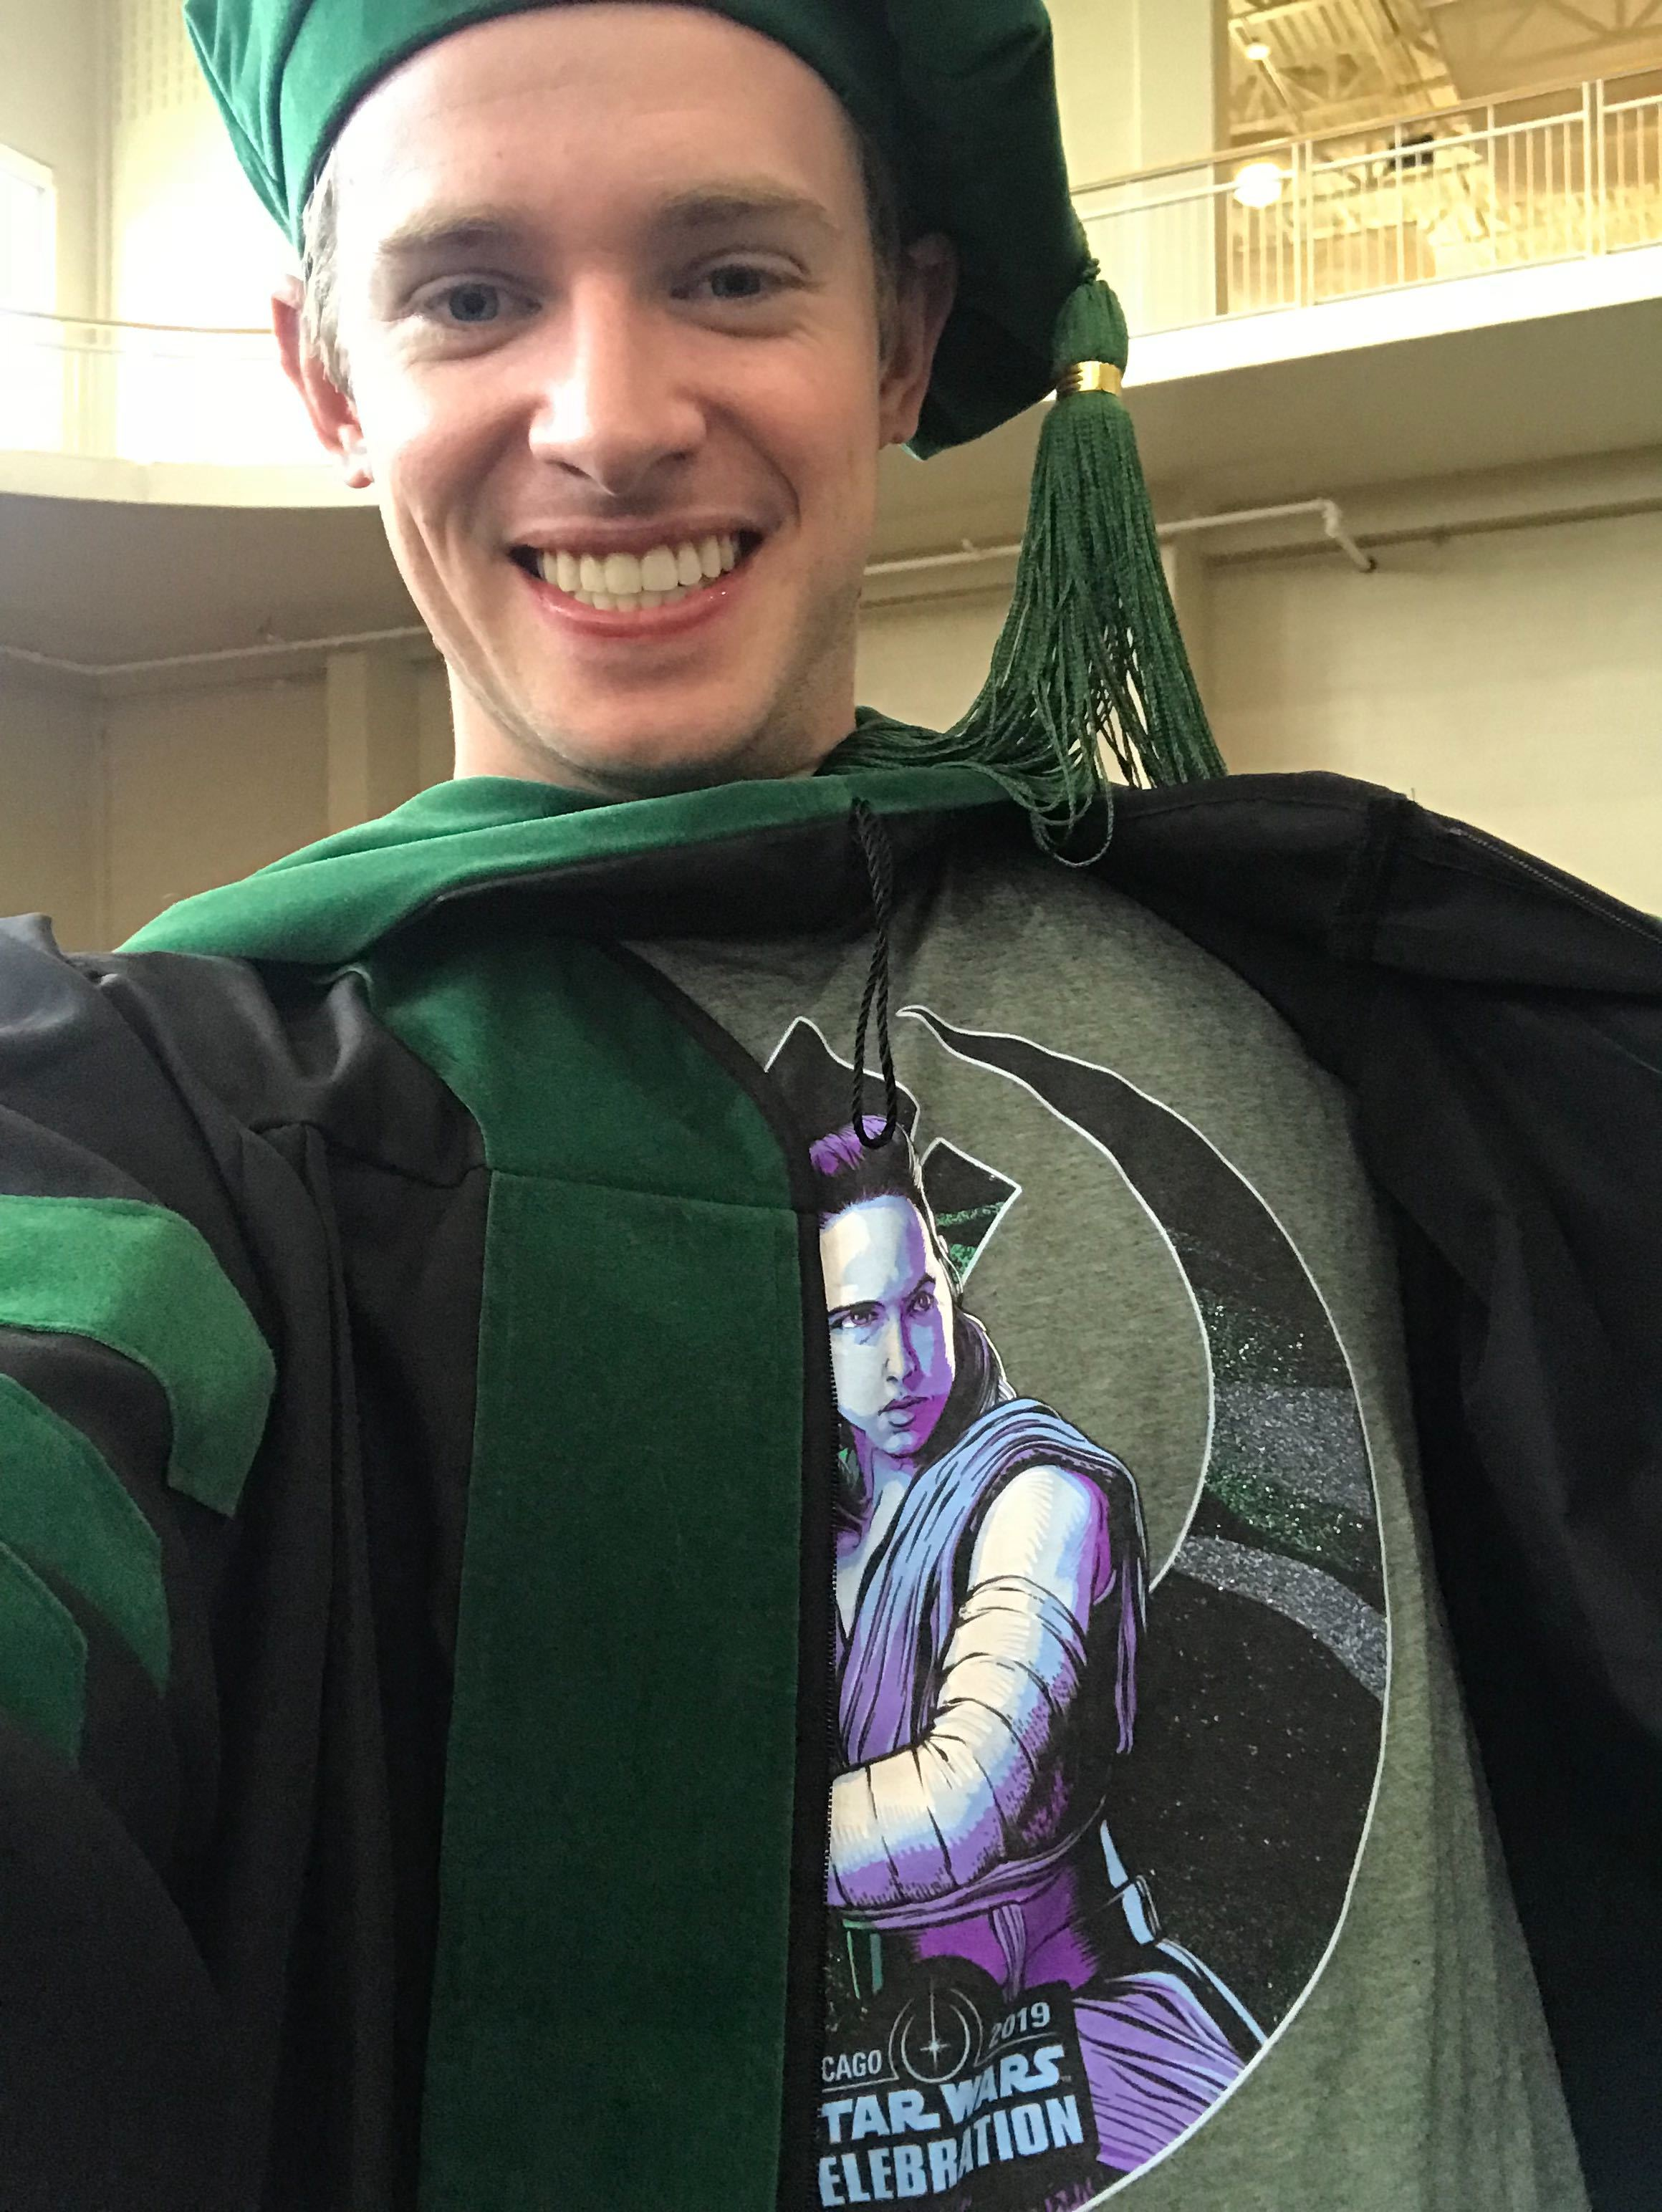 Corey with his Rey shirt graduating from medical school